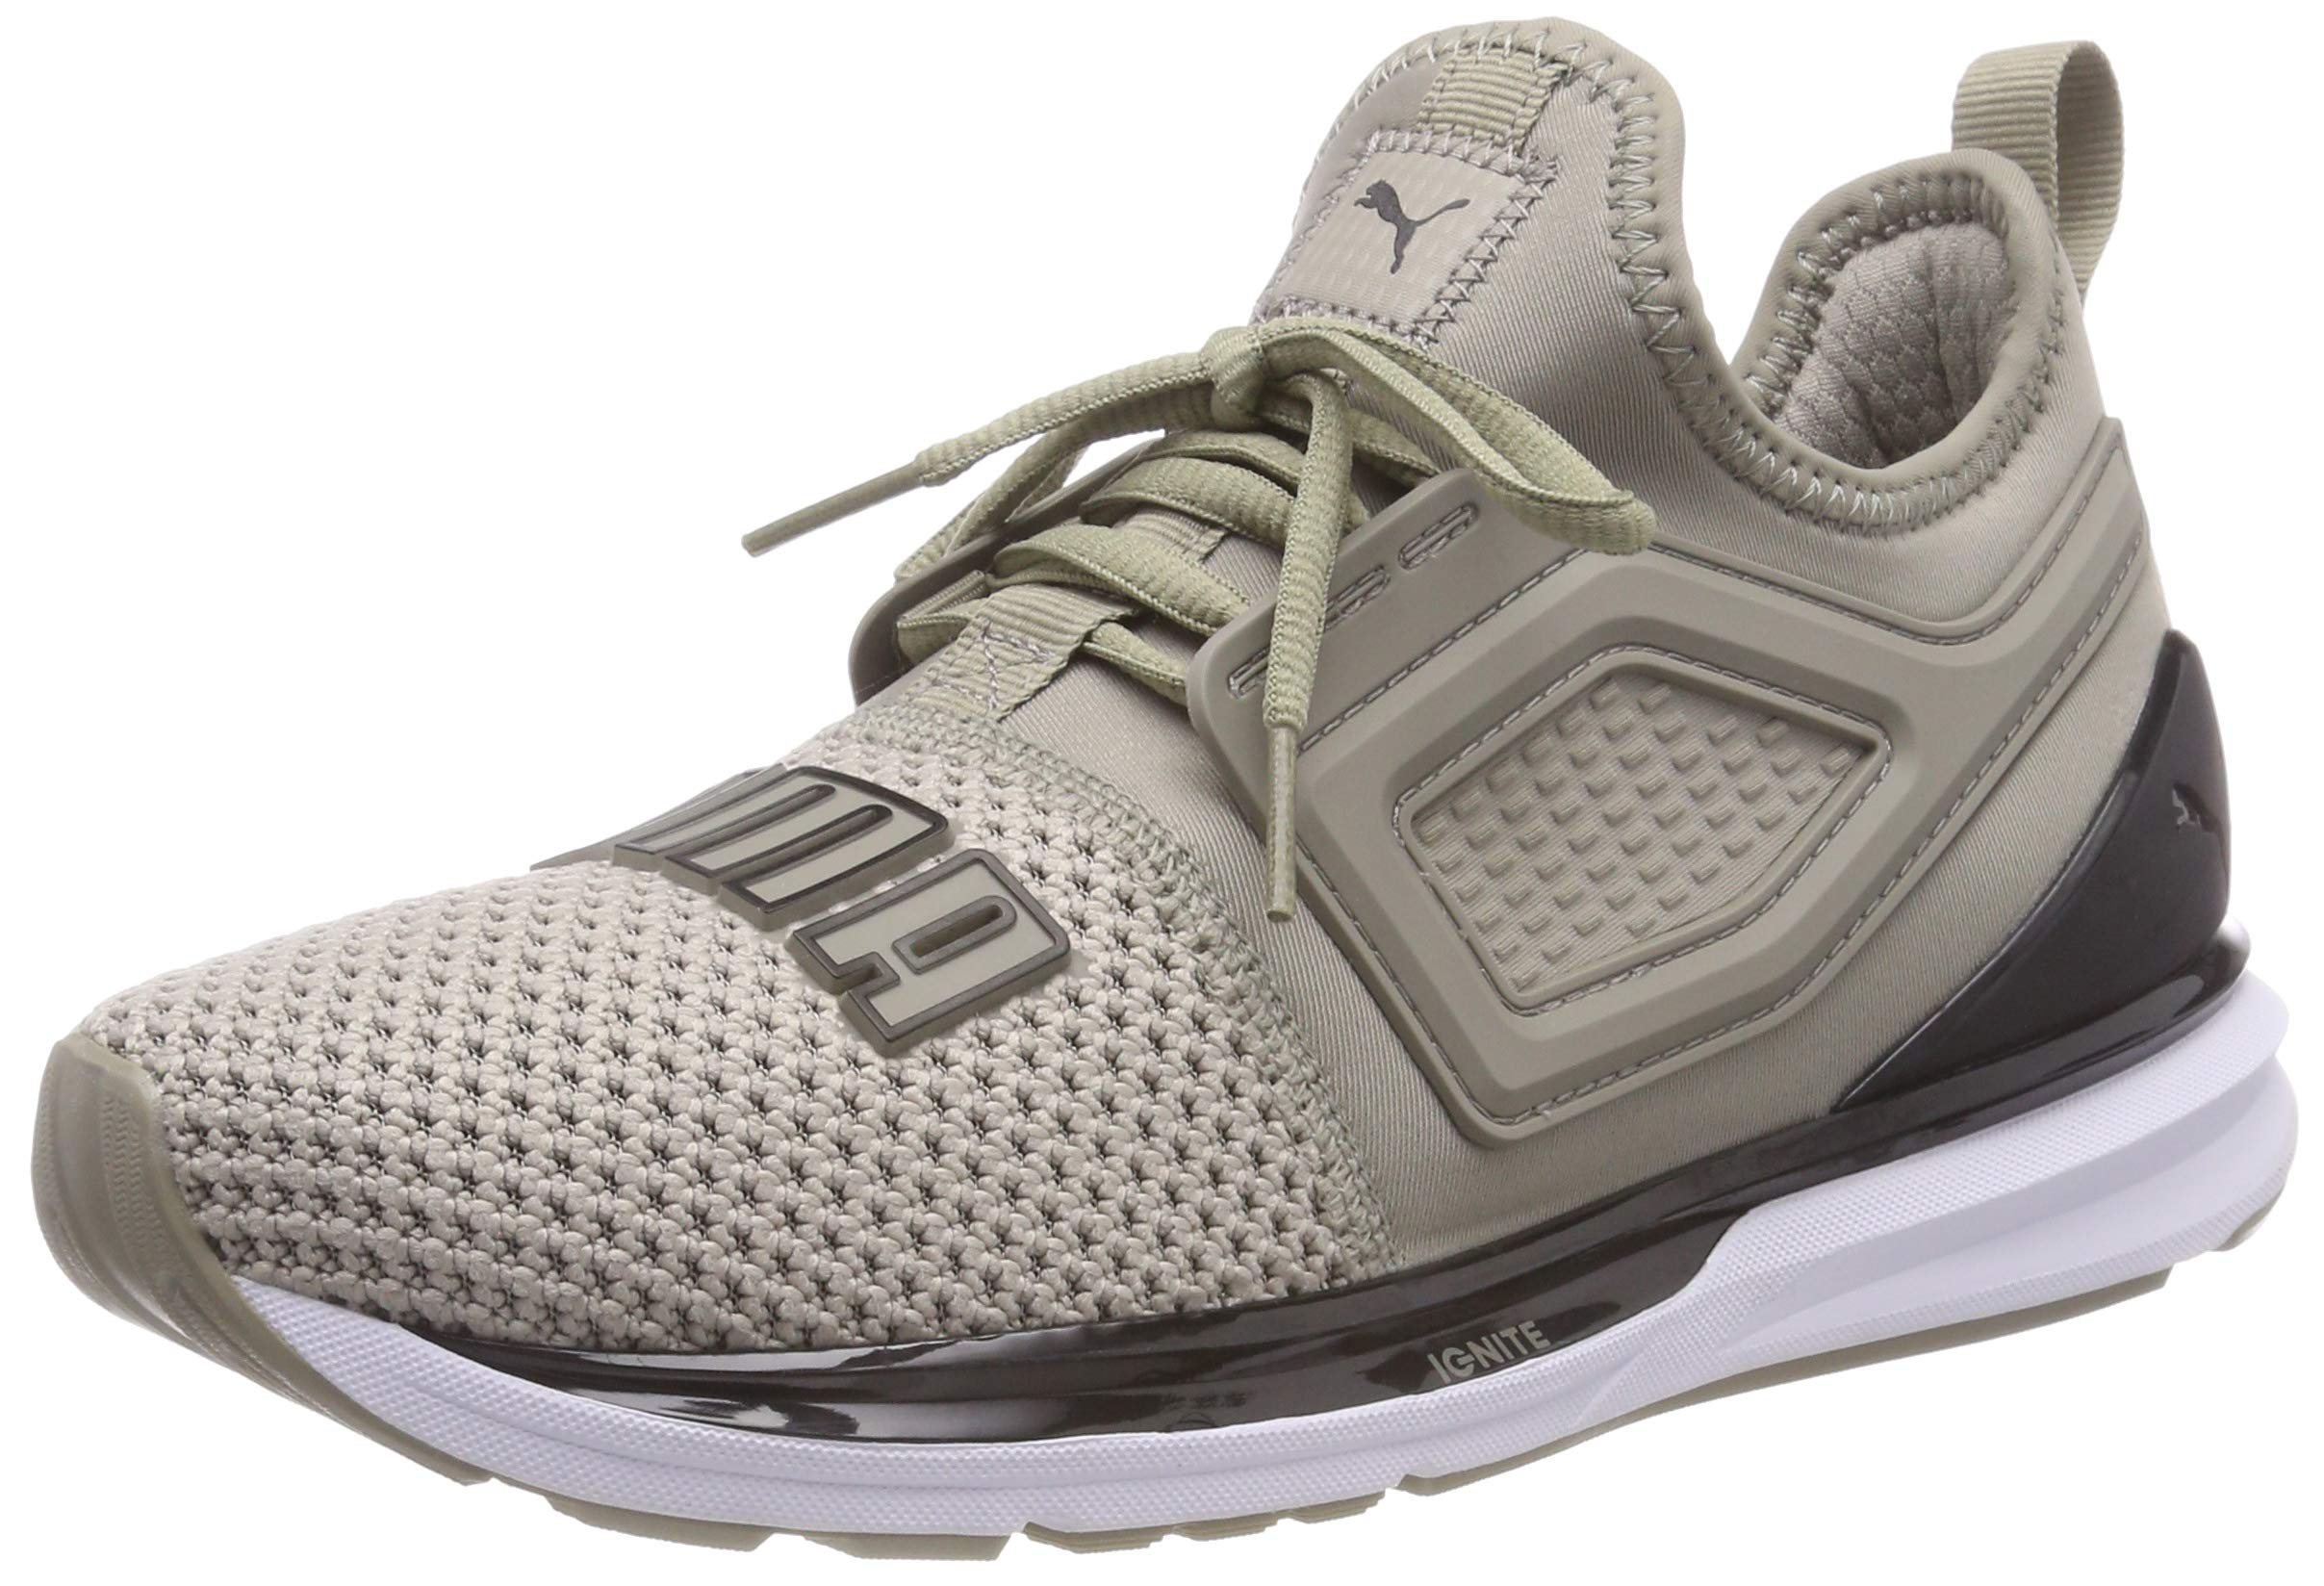 check out 1bd3b 7532b Puma Ignite Limitless 2, Chaussures de Running Mixte Adulte product image